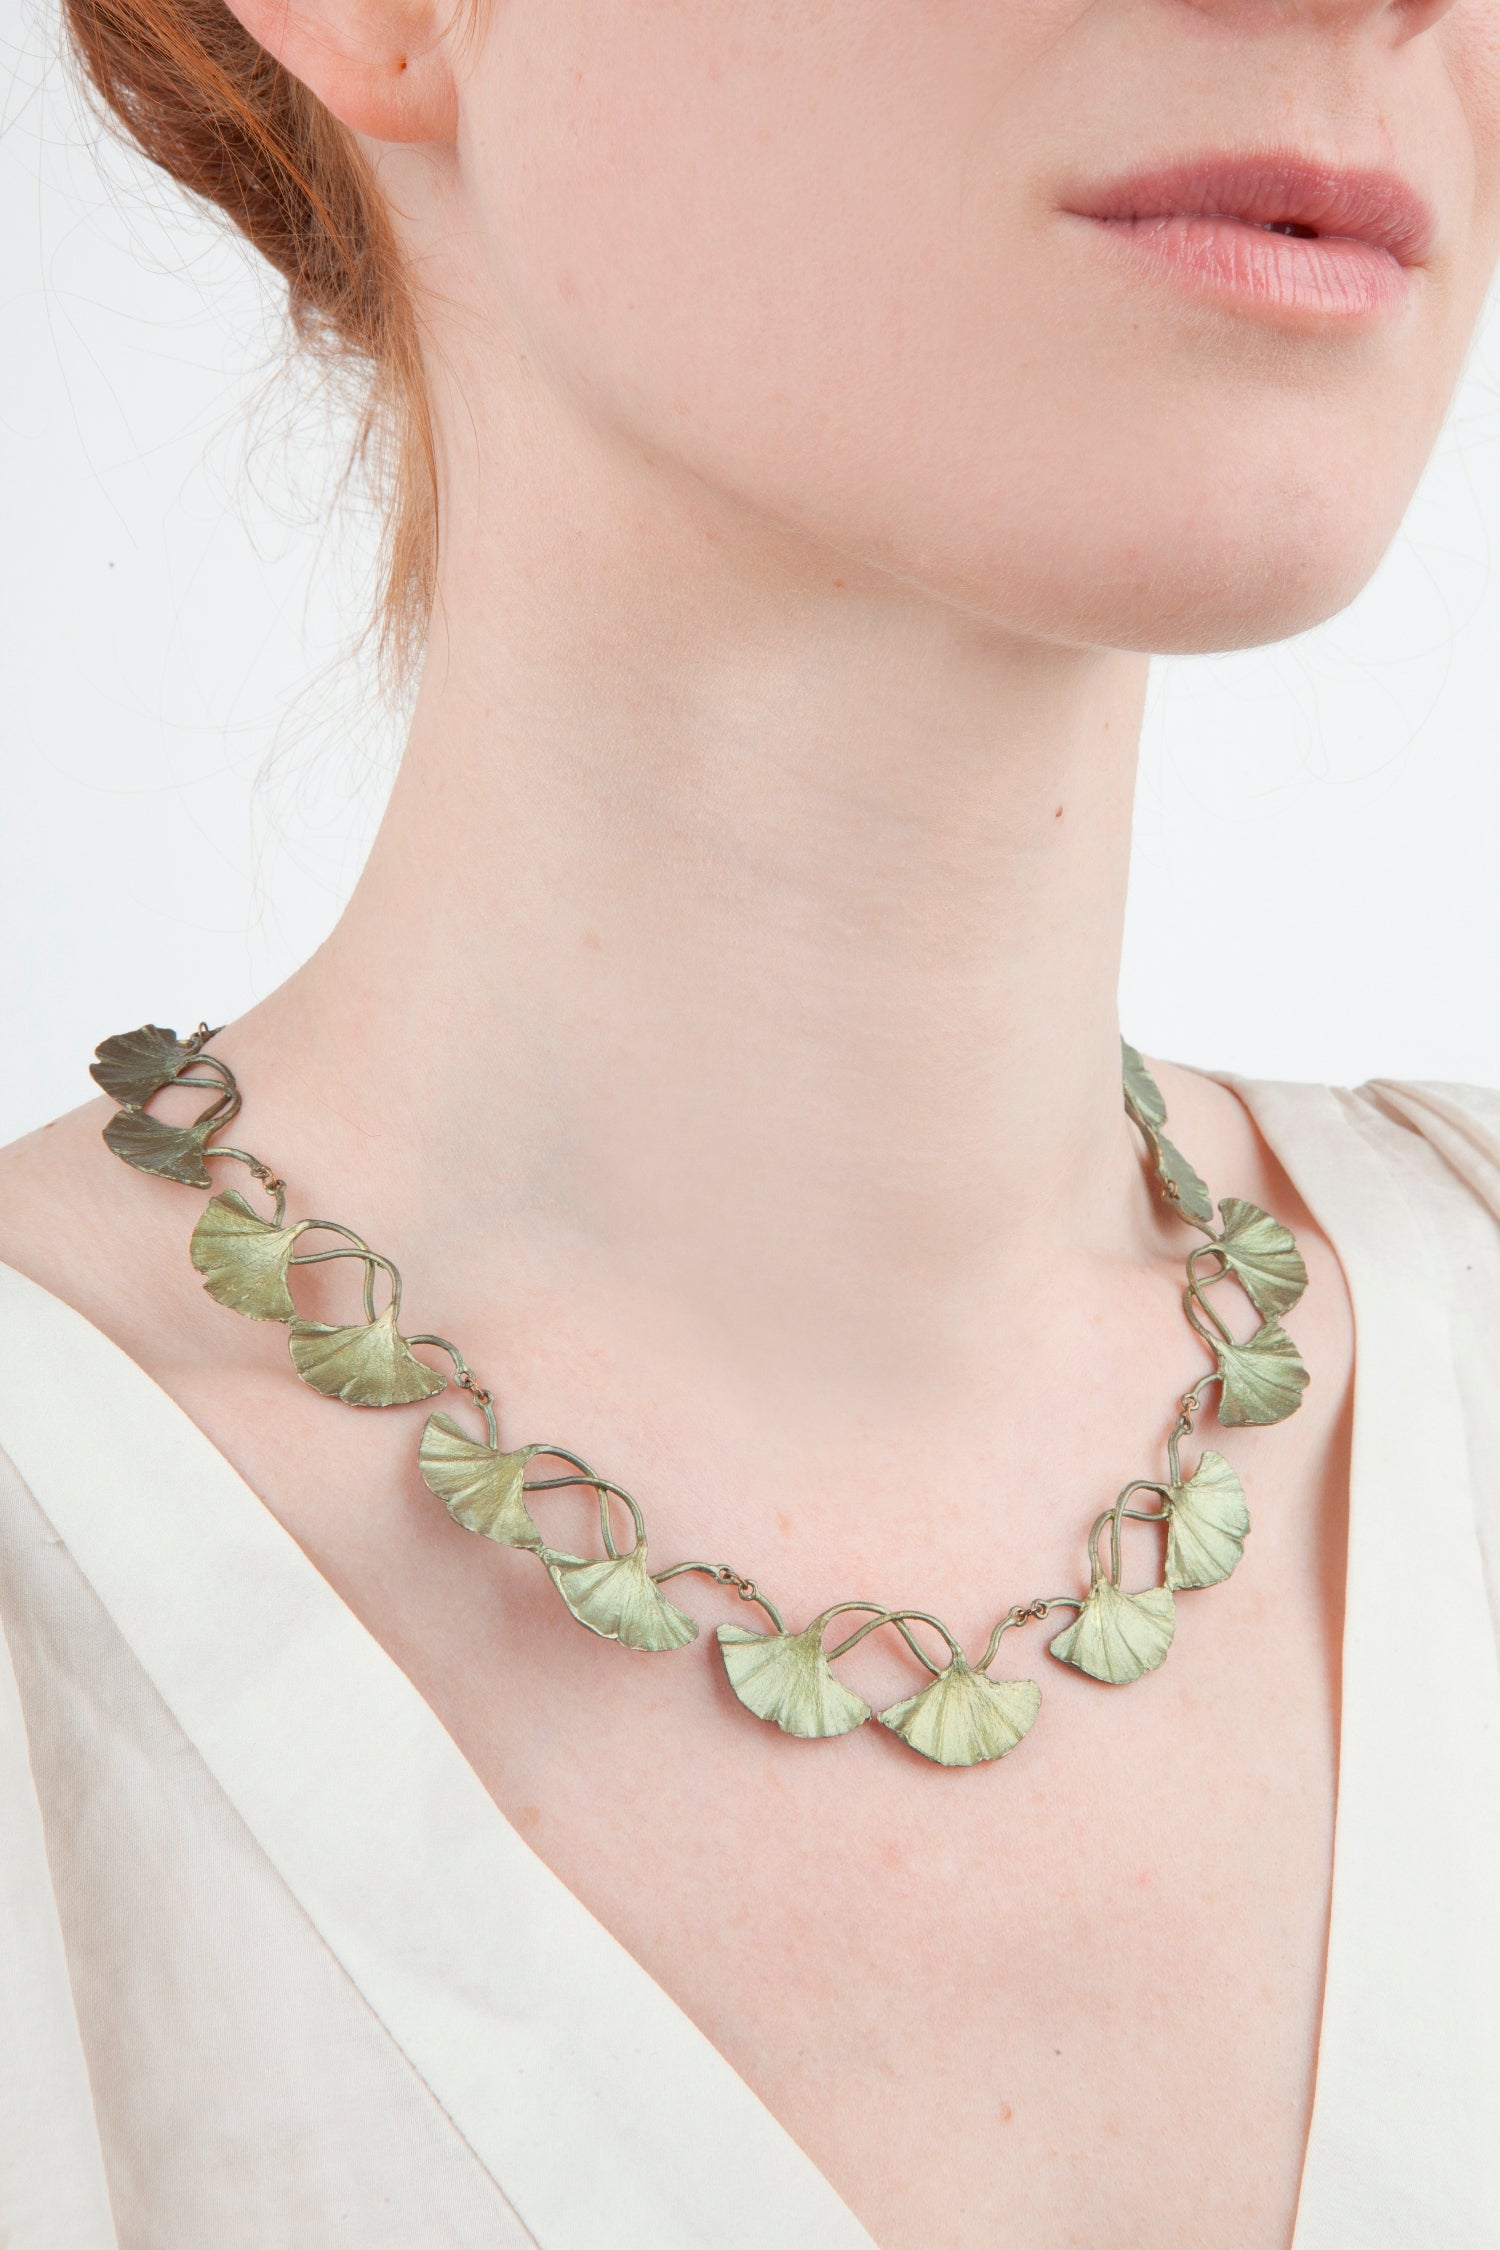 Ginkgo Necklace - Contour